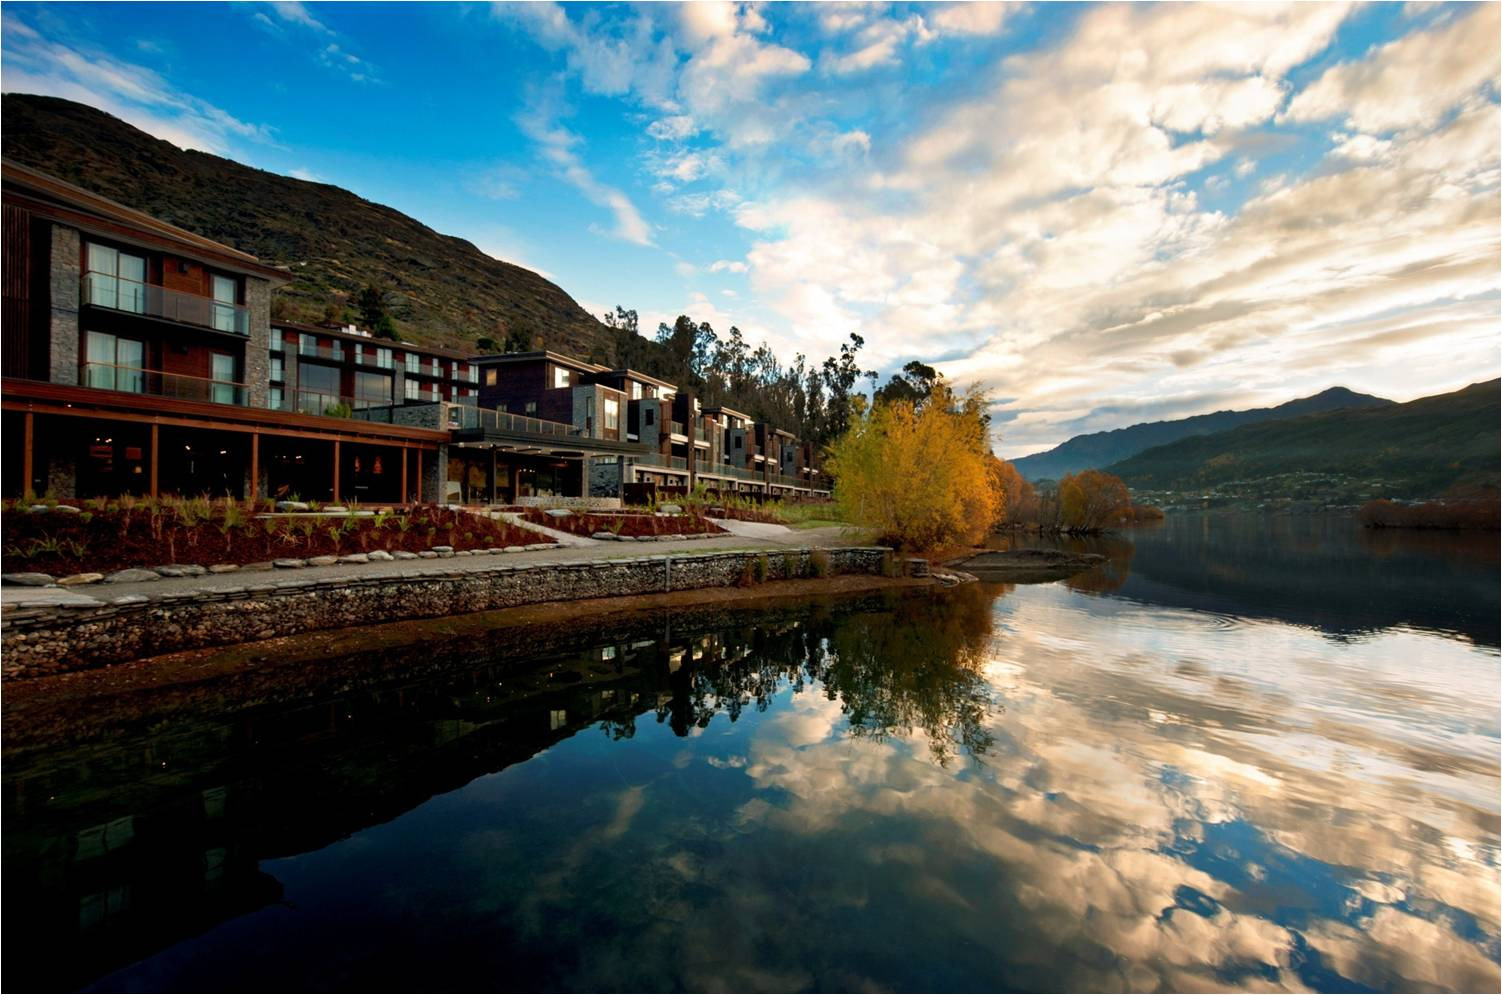 The Luxurious Hilton Hotel in Queenstown, New Zealand